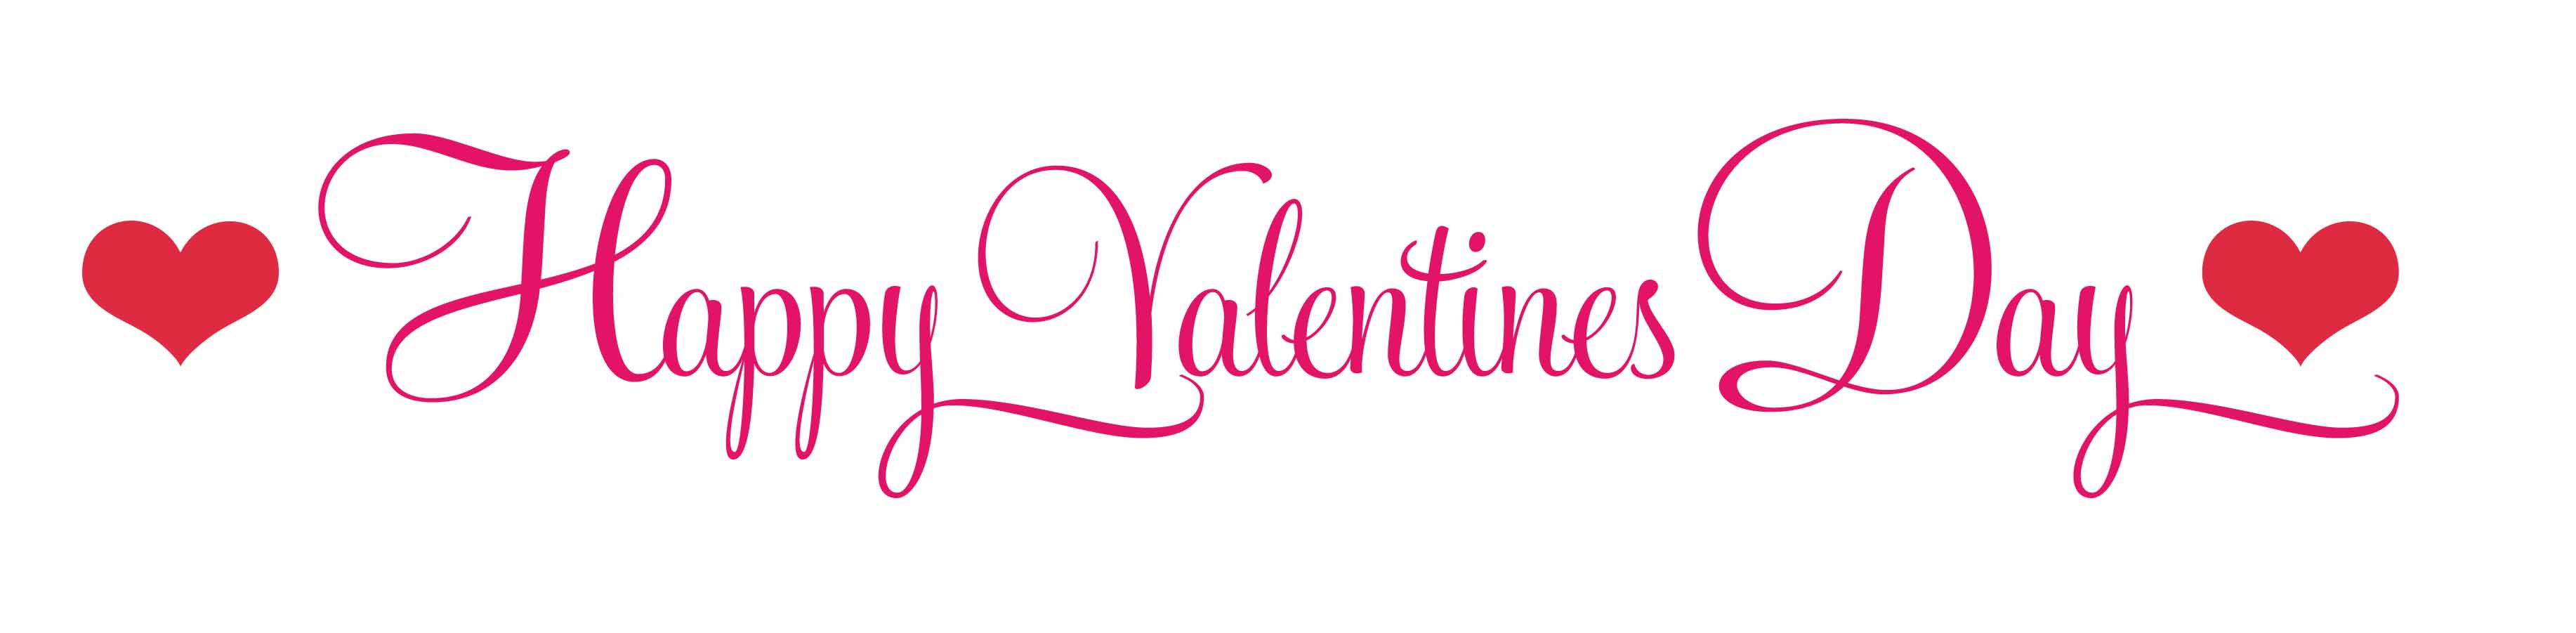 Valentines Day Clipart For . Valentines -Valentines day clipart for . Valentines Day Decor More .-13